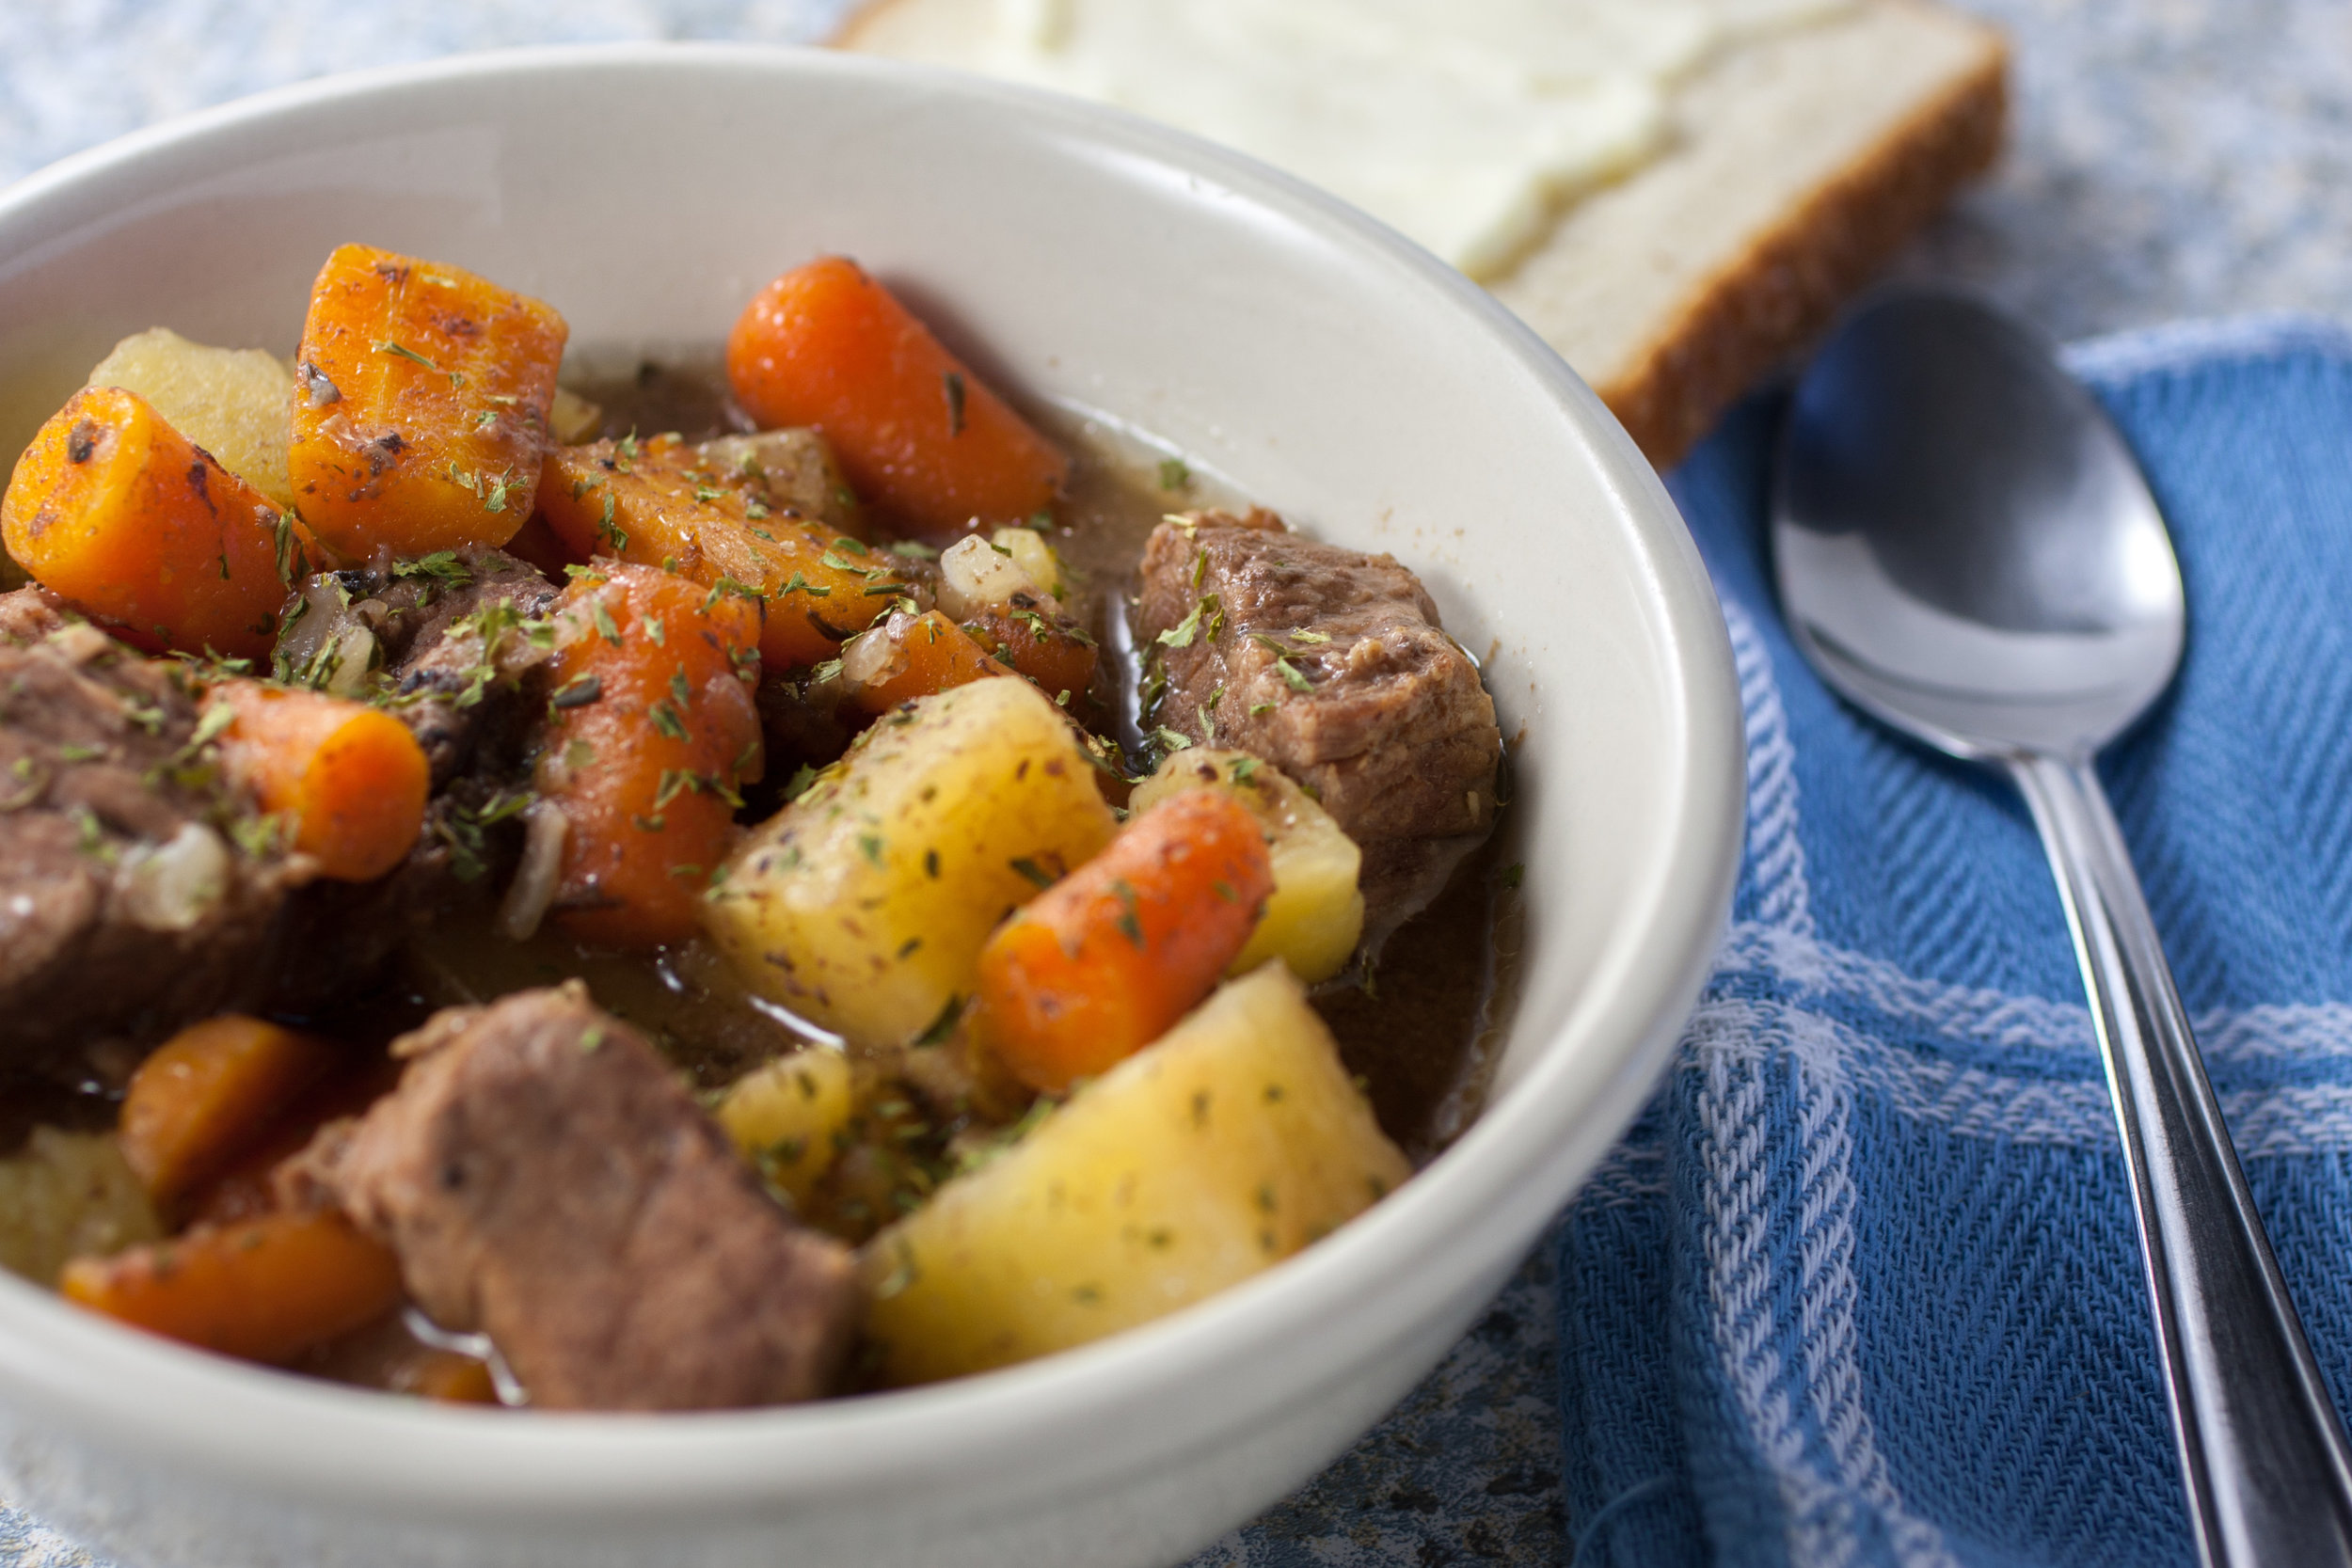 Dutch Oven Stew - Ingredients: Hamburger, Potatoes, Mixed Vegetables, Italian Stewed Tomatoes, and Lawry's seasoning.